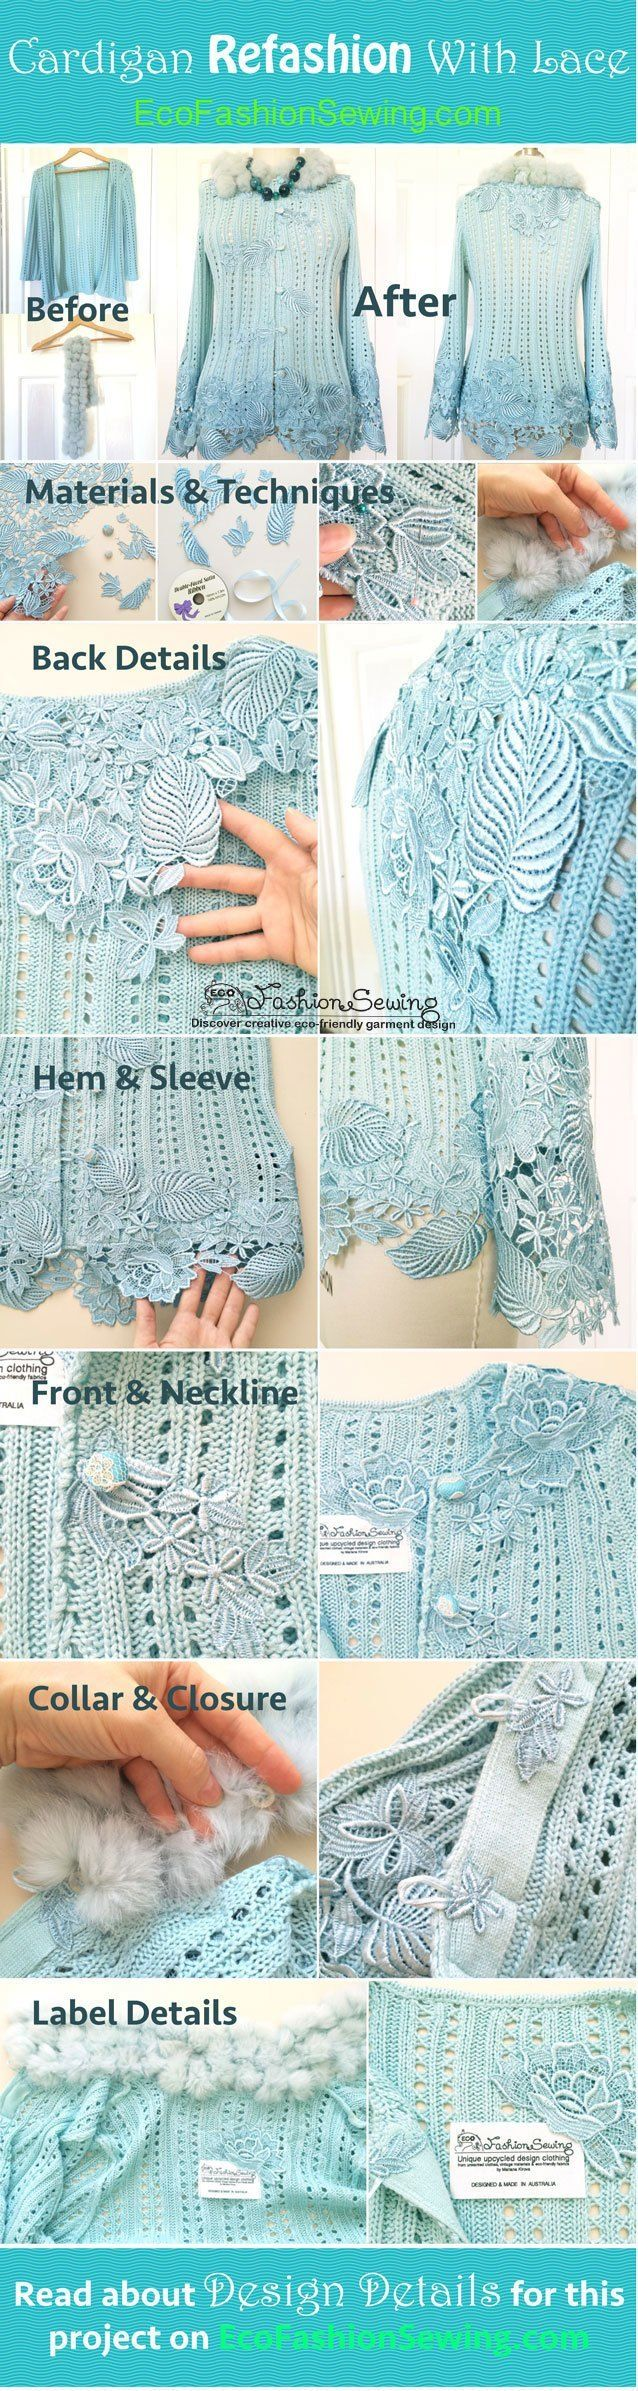 "Design details done for stylish cardigan refashion with lace and thrifted fur scarf. Lots of pictures showing all elements and the embellishment technique used in this beautiful project. Get inspired and see how you can transform your cardie, jacket or vest from ""boring casual"" to ""romantic boho chic"" fashion piece!"